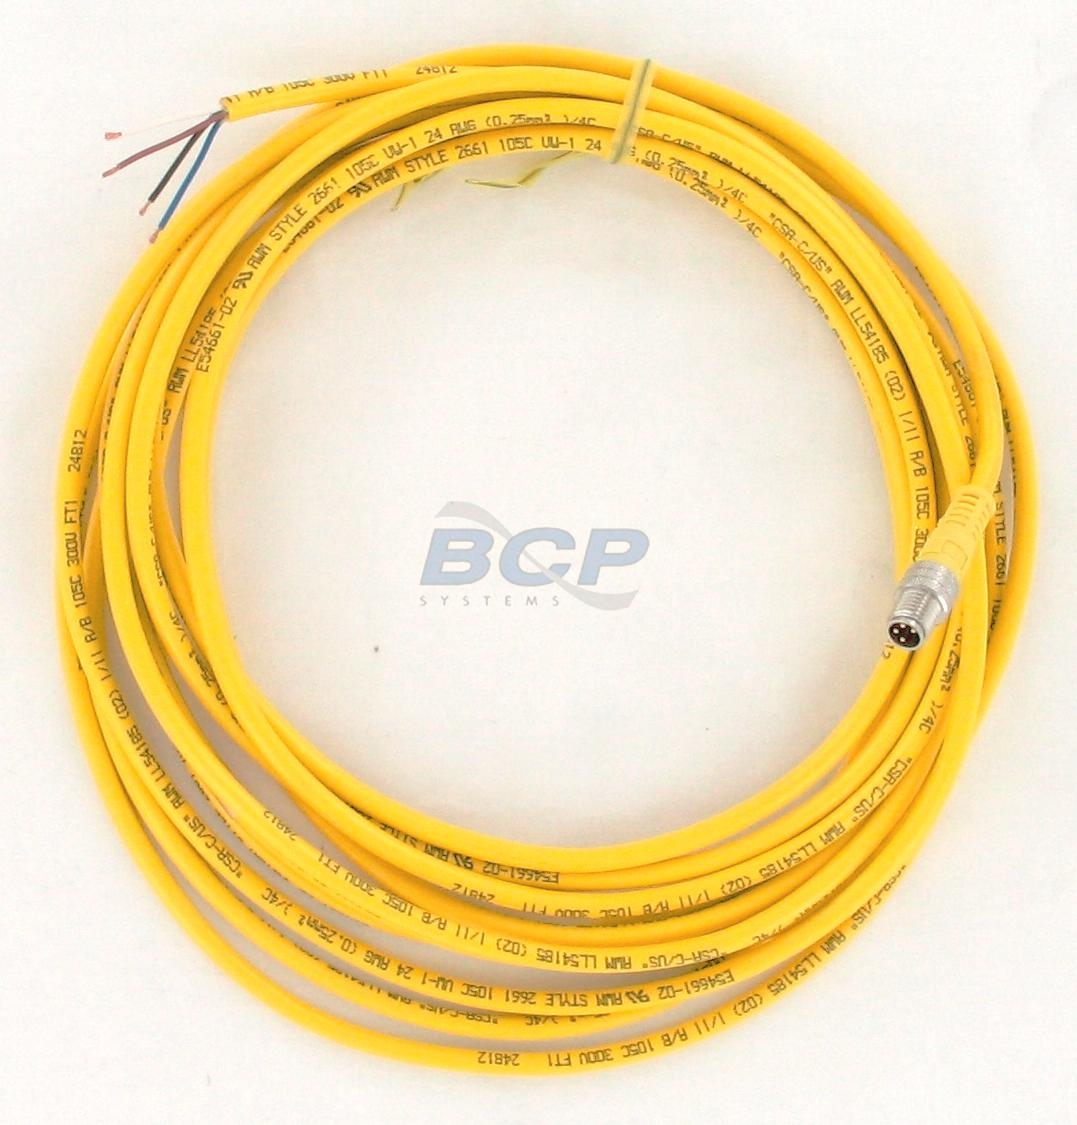 Bcp Systems Specialized Wire Harness Assembly And Repair Services Aerospace For Standard Cordset Nano Change 4p 5m